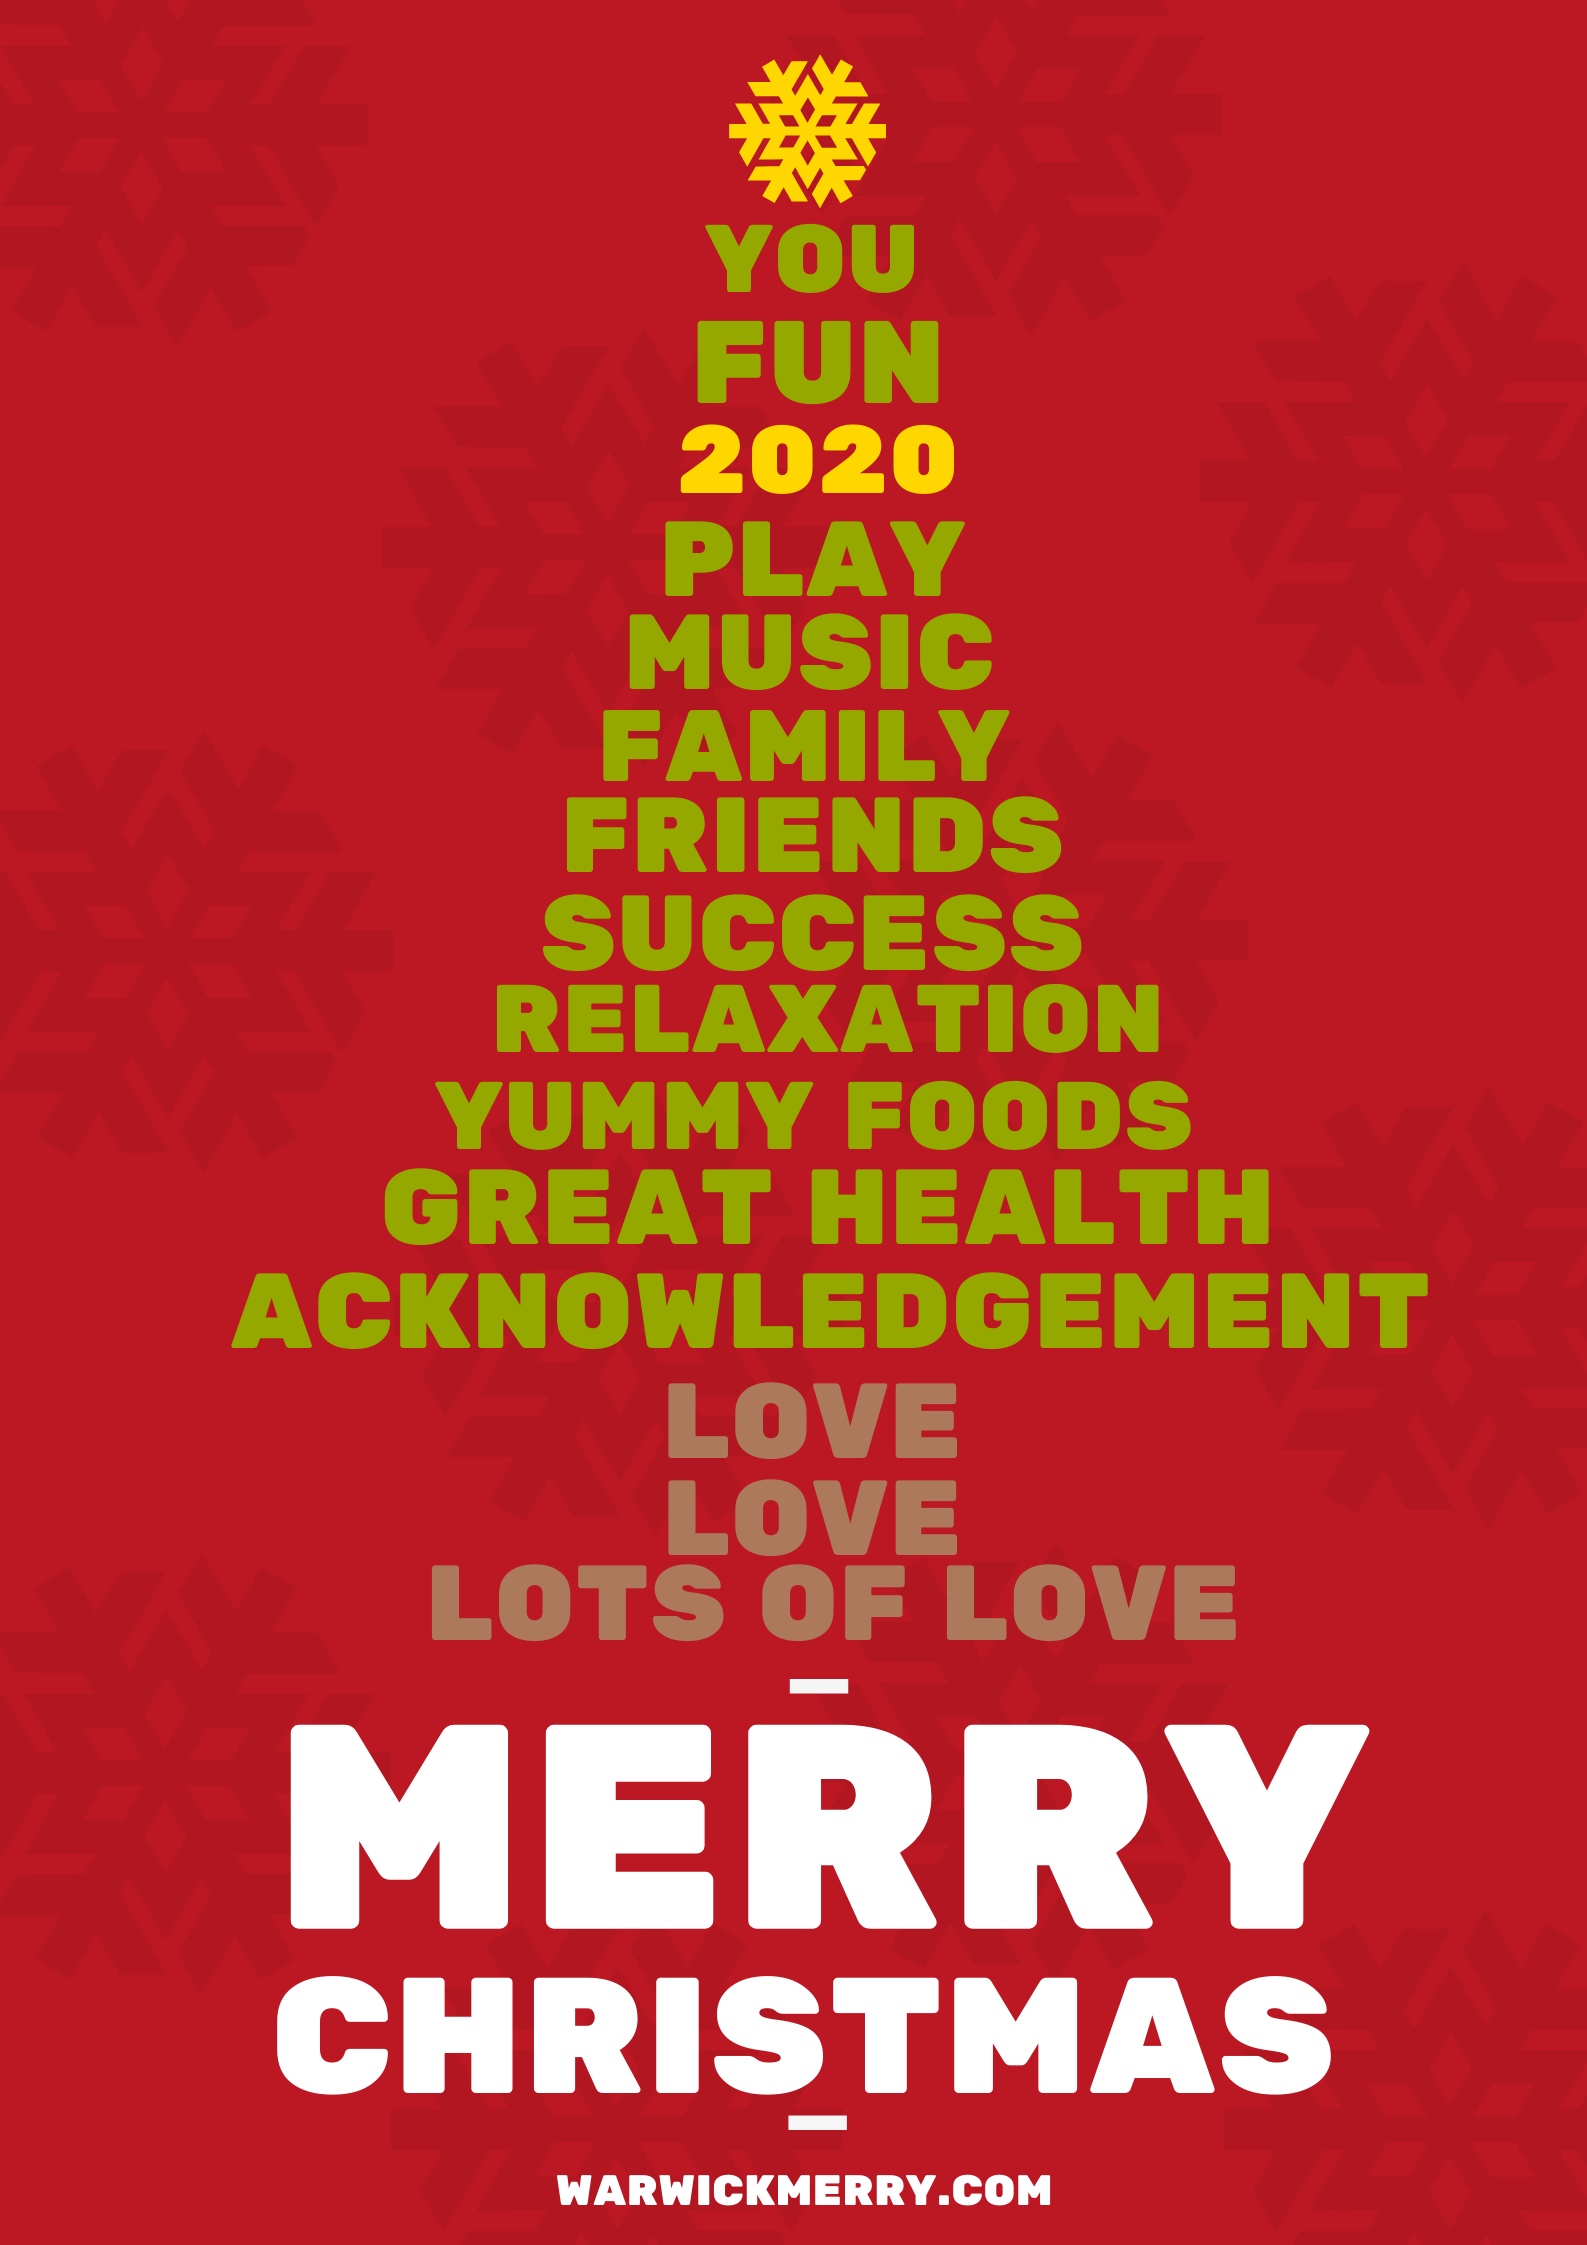 A christmas tree made up of the words: You, fun, 2020, play, music, family, friends, success, relacation,yummy foods, great health, acknowledgement, love, love, lots of love.